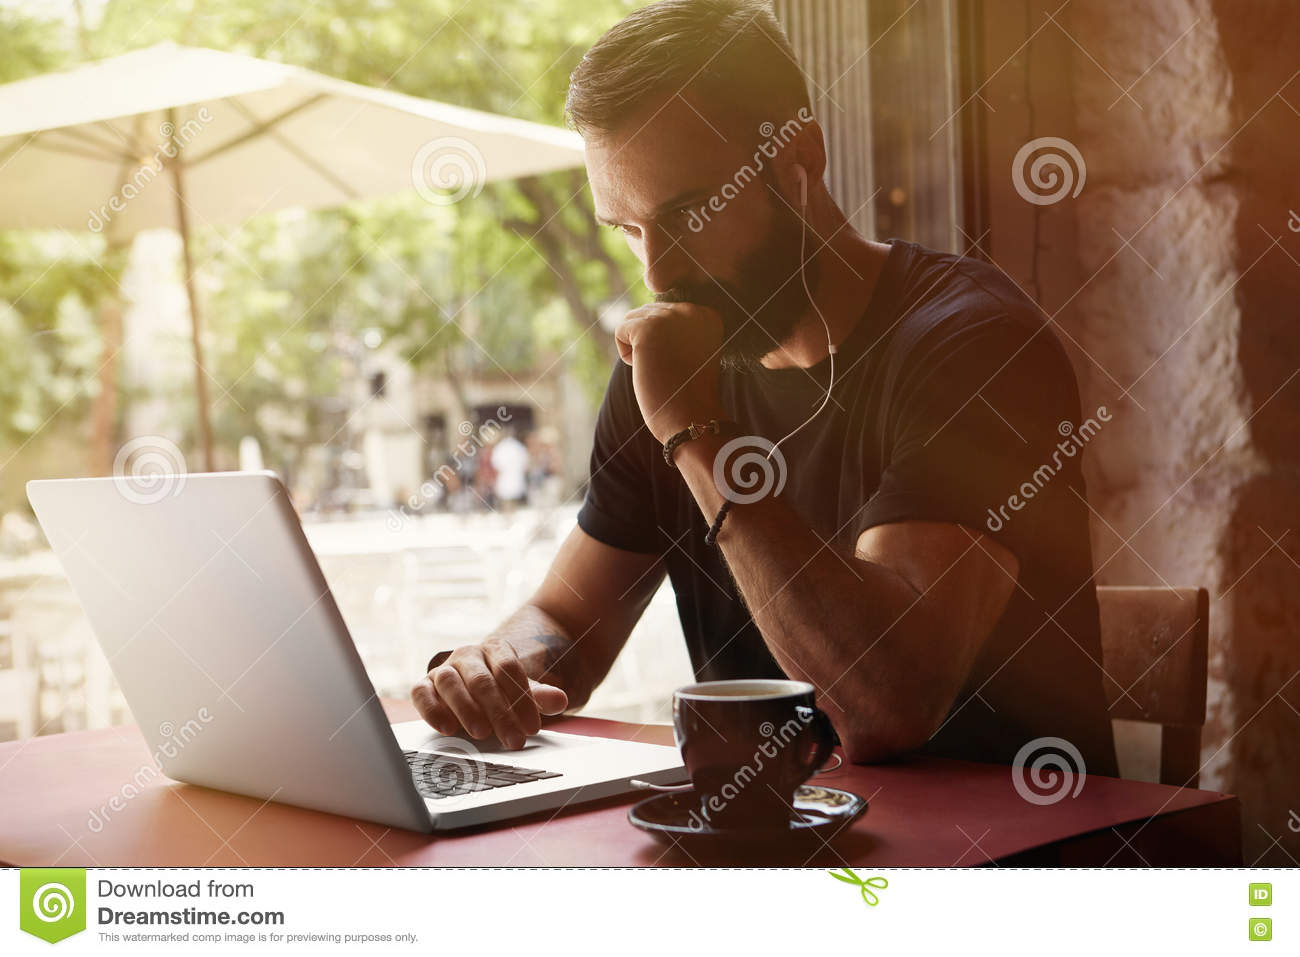 Concentrated Young Bearded Businessman Wearing Black Tshirt Working Laptop Urban Cafe.Man Sitting Table Cup Coffee